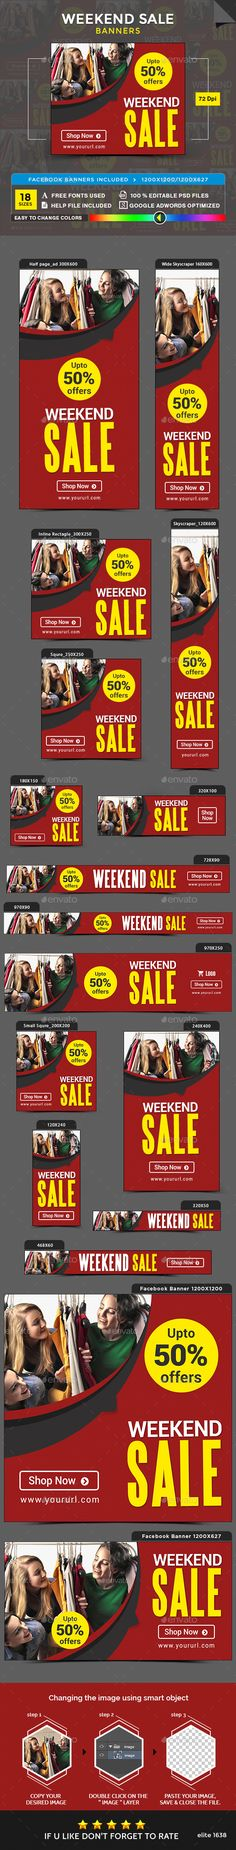 Weekend Sale Banners Design Template - Banners & Ads Web Template PSD. Download here: https://graphicriver.net/item/weekend-sale-banners/17002535?s_rank=36&ref=yinkira